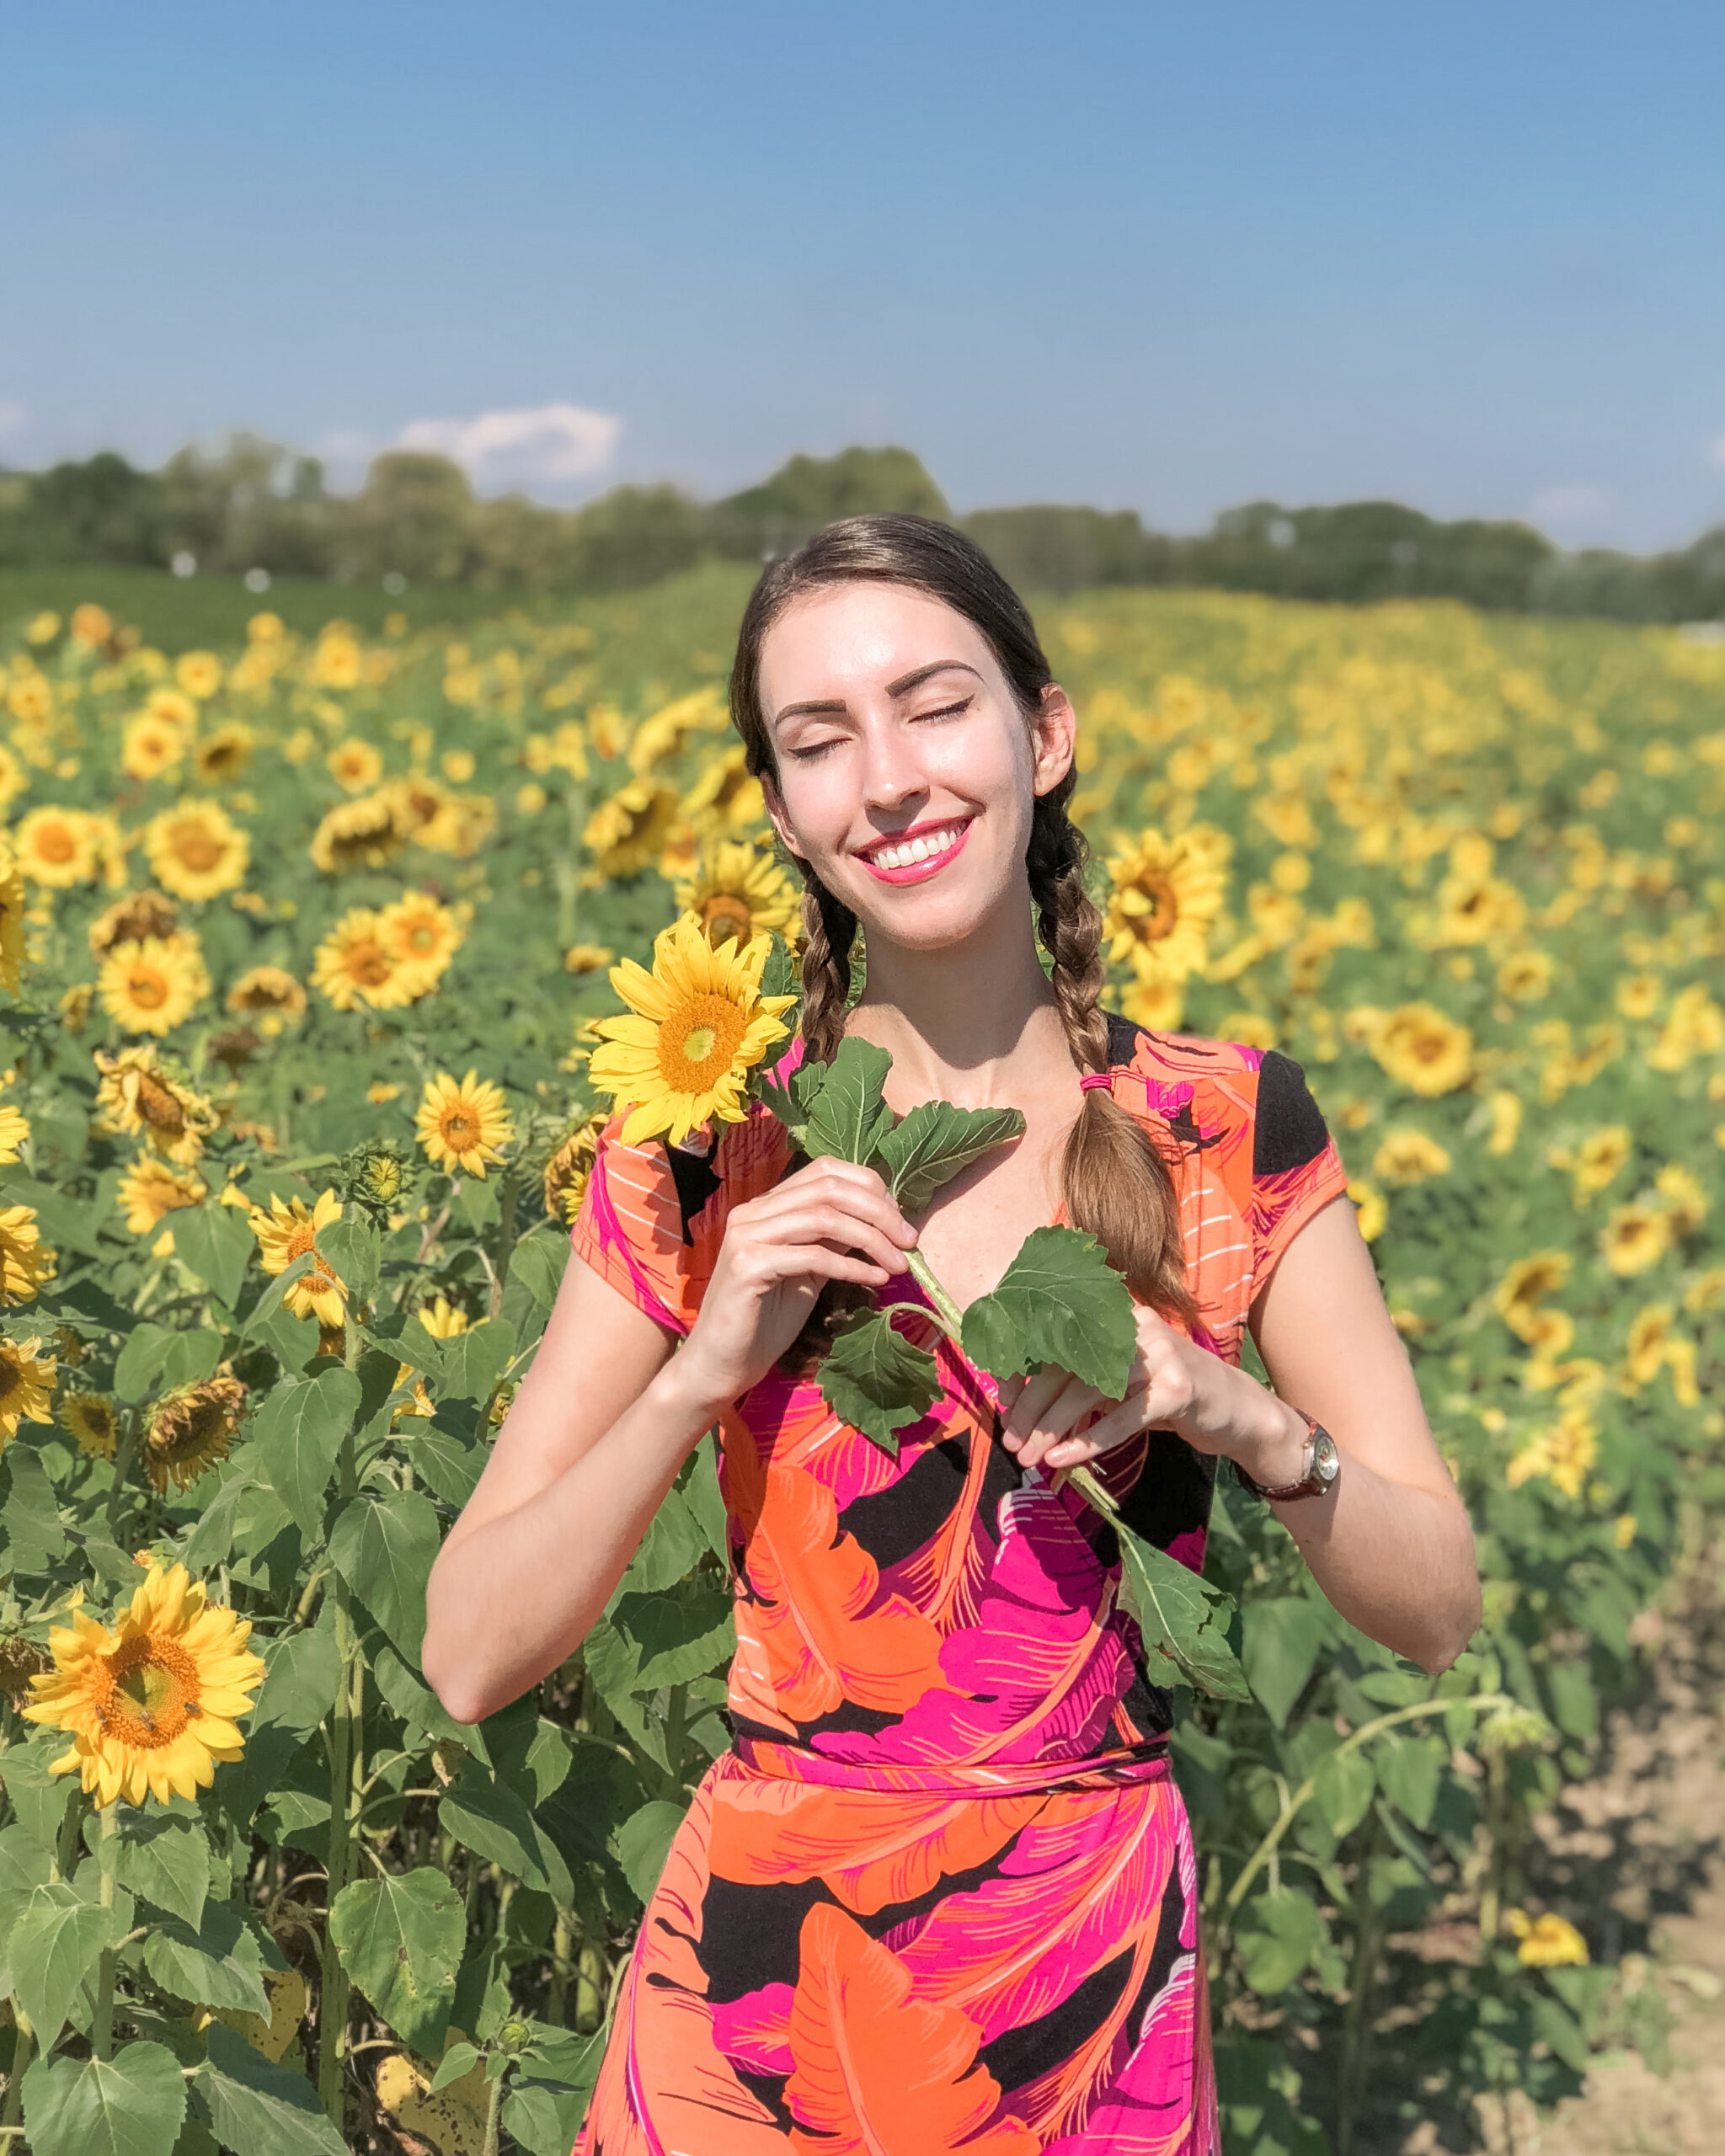 Travel portrait of Ellie wearing sustainable fashion on one of her verdant adventures in nature | Sunflower field in Hamilton, Ohio, USA